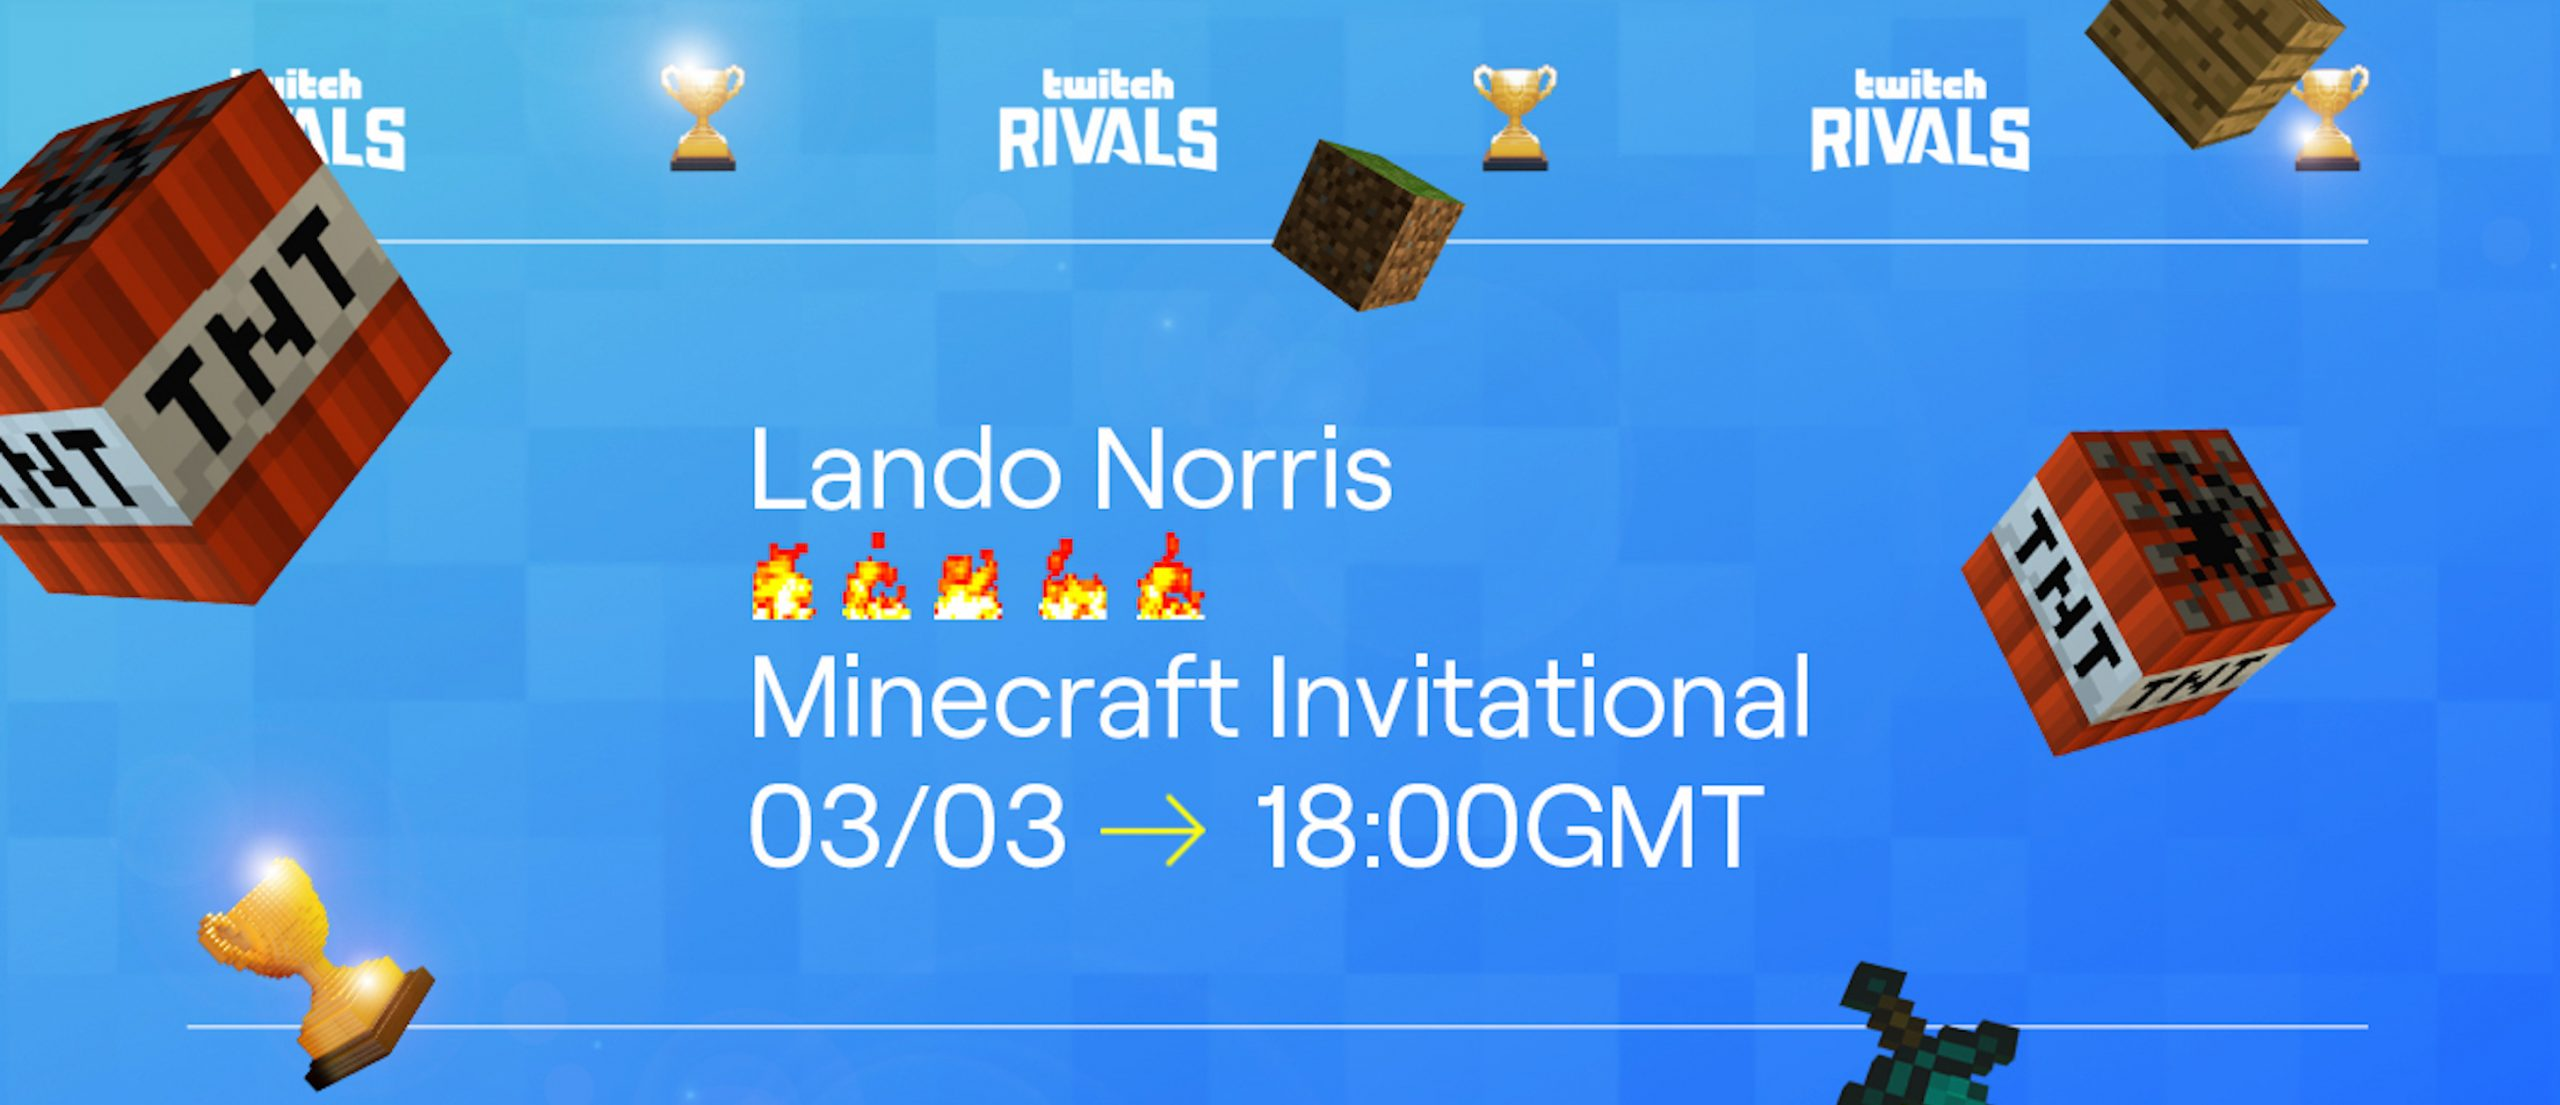 Lando Norris to Feature in Twitch Rivals Minecraft Event